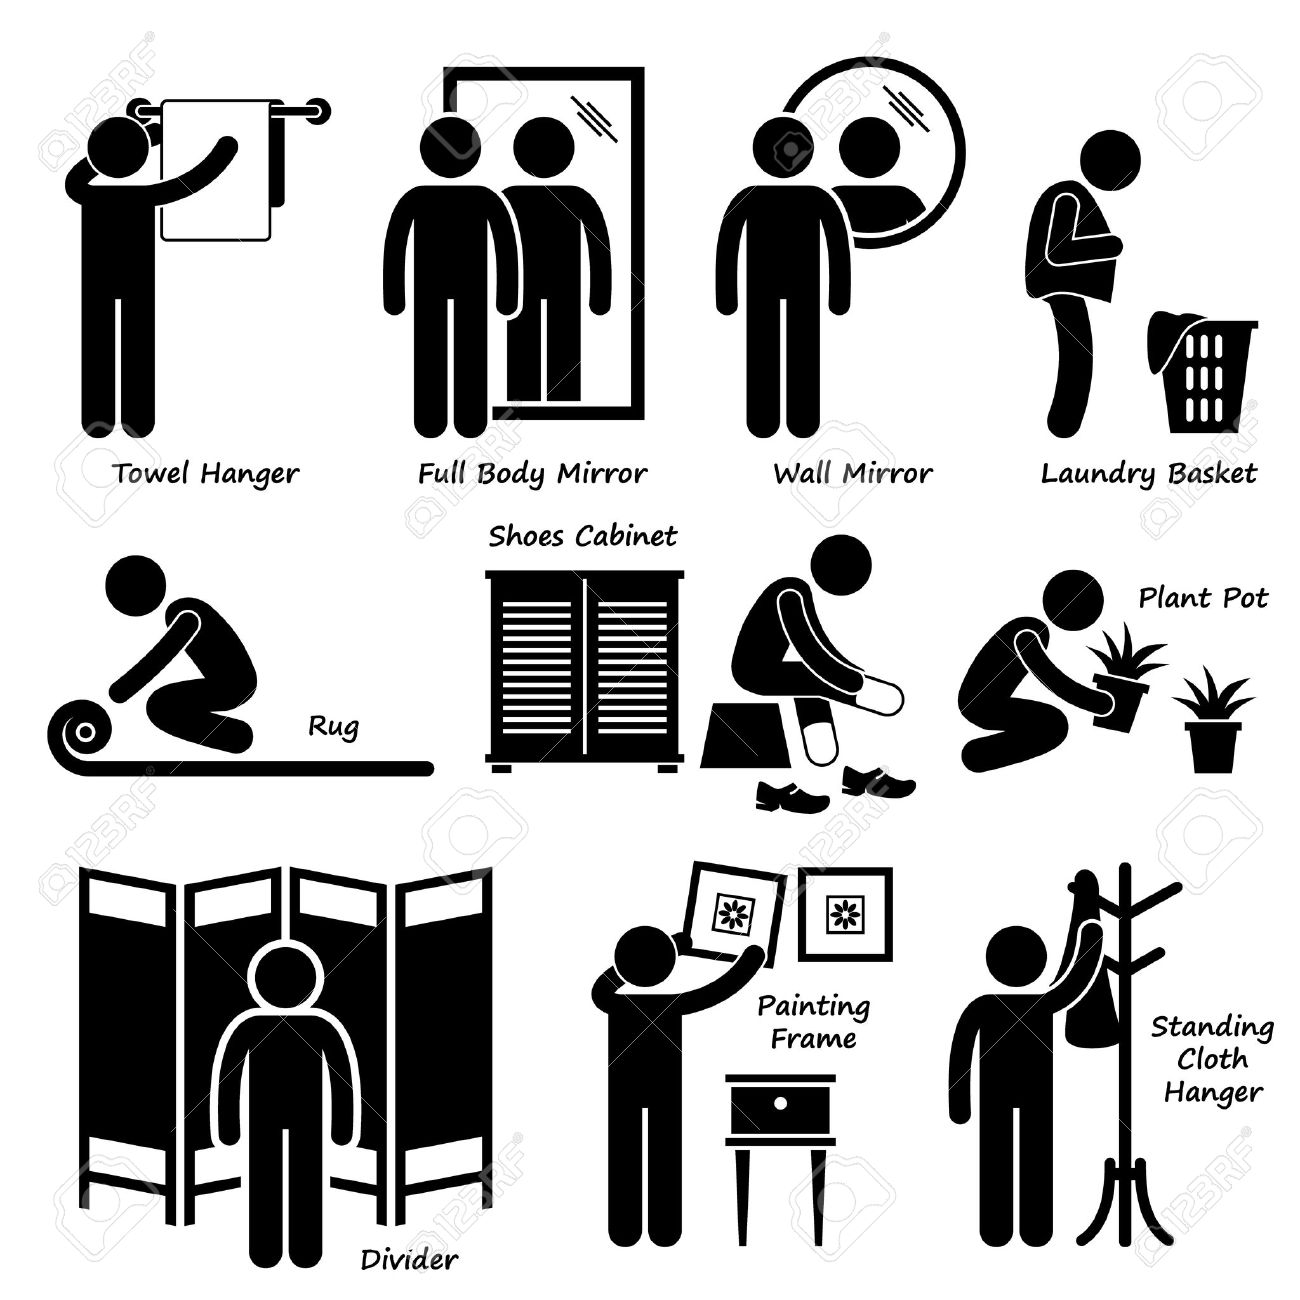 Cabinet People Clipart 20 Free Cliparts